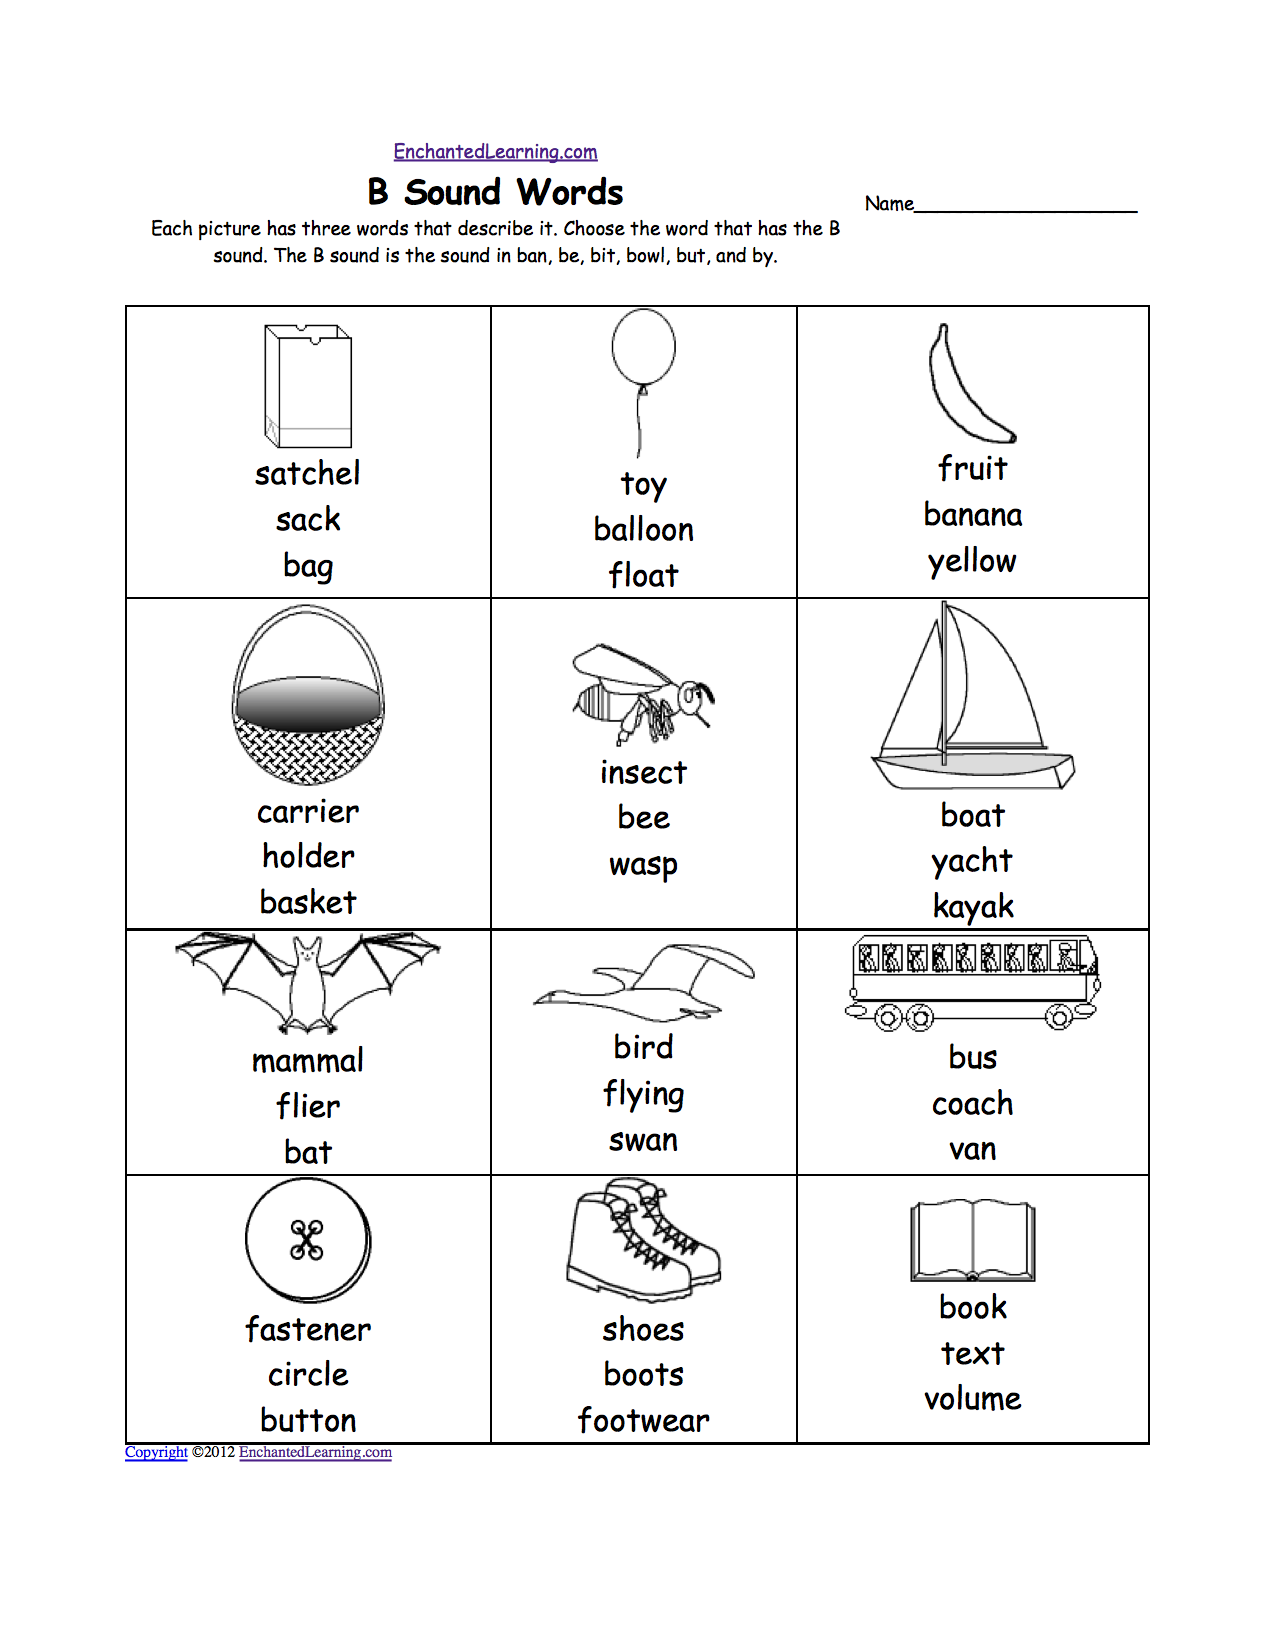 Weirdmailus  Scenic Phonics Worksheets Multiple Choice Worksheets To Print  With Entrancing Quotbquot Sound Phonics Worksheet Multiple Choice Each Picture Has Three Words That Describe It Choose The Word That Has A Quotbquot Sound The Quotbquot Sound Is The Sound  With Amazing Free Math Worksheets Multiplication Also Free Spanish Worksheets For Kids In Addition Decimal Models Worksheet And Genetic Crosses Worksheet Answer Key As Well As Practice Telling Time Worksheets Additionally Solving Equations By Multiplying Or Dividing Worksheets From Enchantedlearningcom With Weirdmailus  Entrancing Phonics Worksheets Multiple Choice Worksheets To Print  With Amazing Quotbquot Sound Phonics Worksheet Multiple Choice Each Picture Has Three Words That Describe It Choose The Word That Has A Quotbquot Sound The Quotbquot Sound Is The Sound  And Scenic Free Math Worksheets Multiplication Also Free Spanish Worksheets For Kids In Addition Decimal Models Worksheet From Enchantedlearningcom